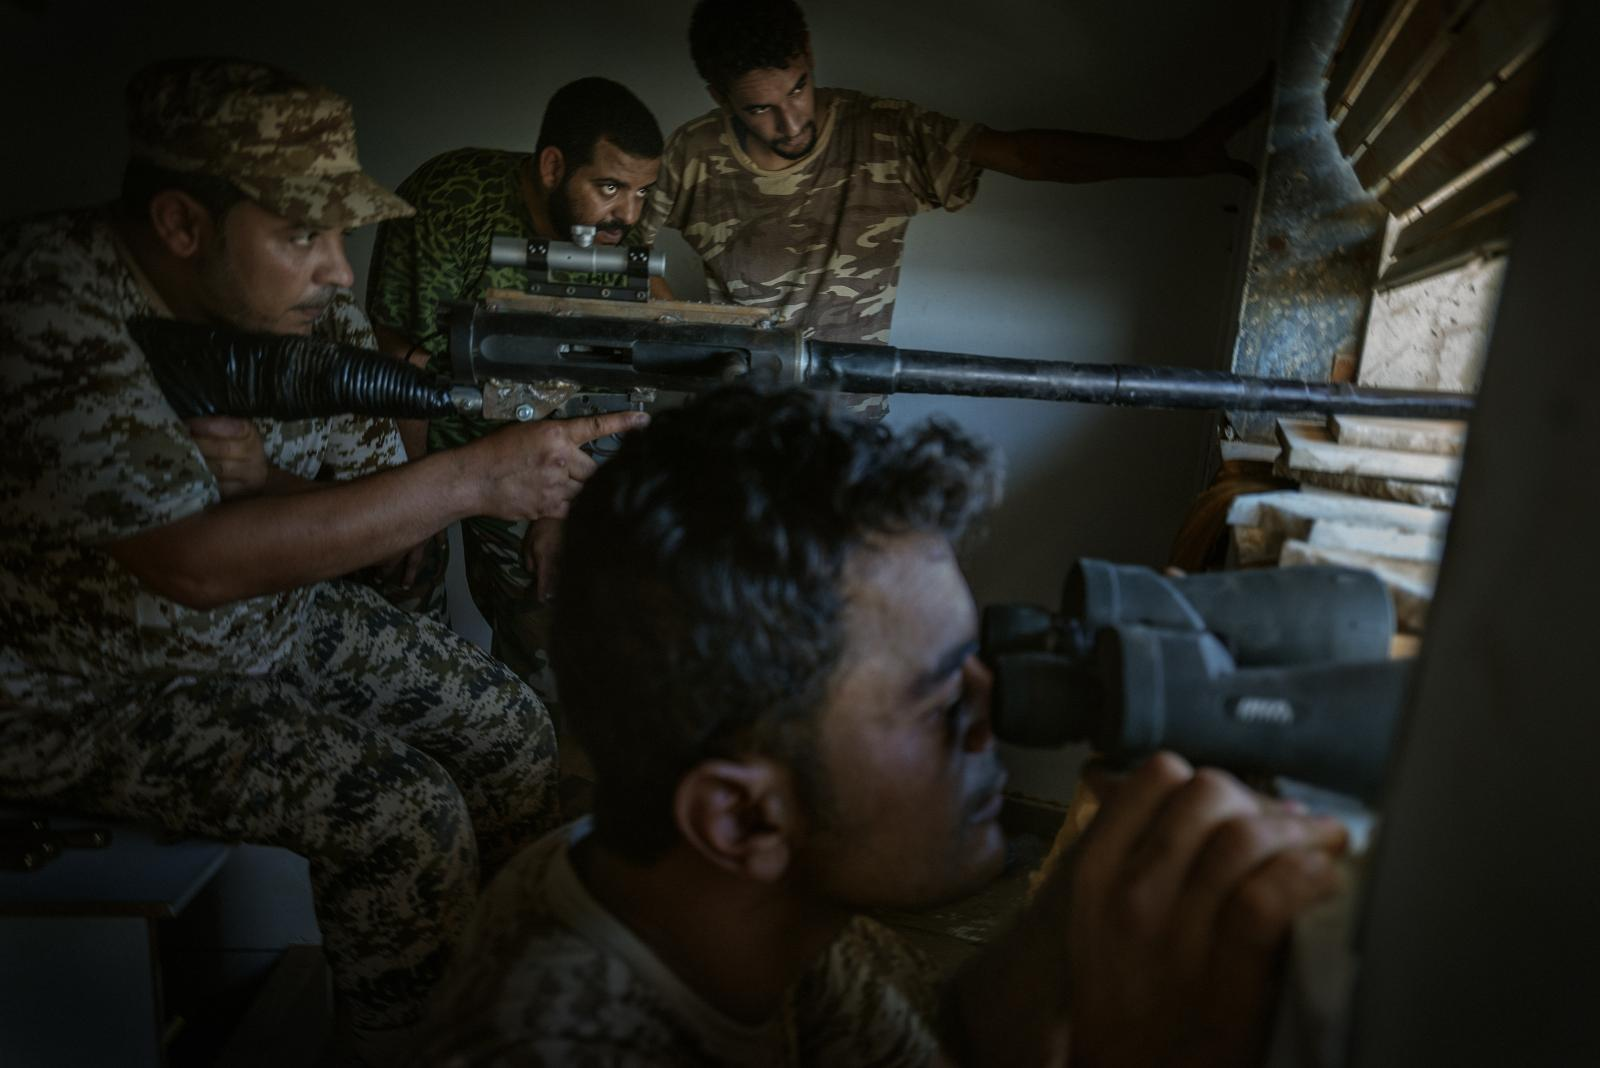 A sniper of the Government of National Accord (GNA) with a homemade rifle fitted out with a DShK barrel (DUSHKA, an anti-aircraft-heavy machine) fires at ISIS positions in Sirte (Libya, 2016)